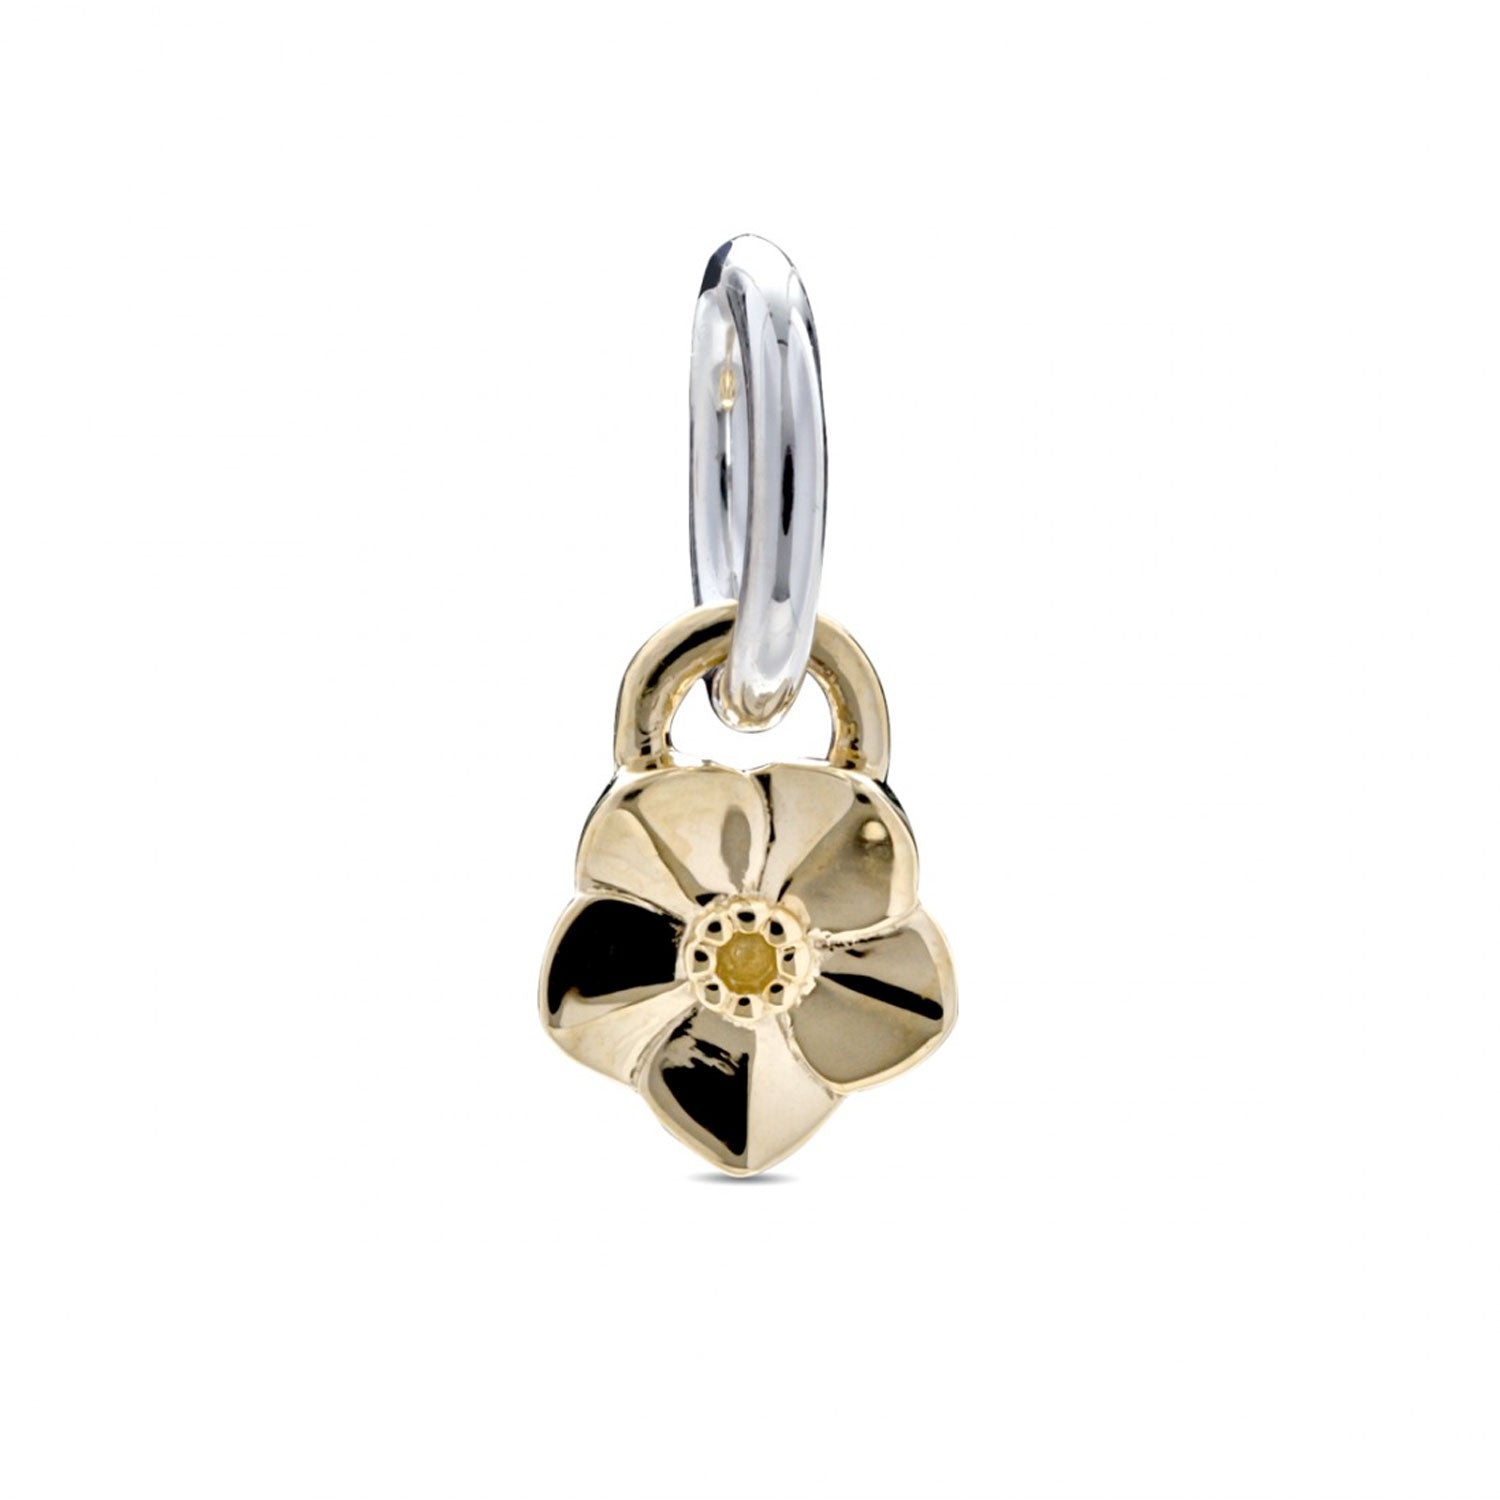 Tiny Forget-Me-Not Gold Charm Memorial Gift Scarlett Jewellery